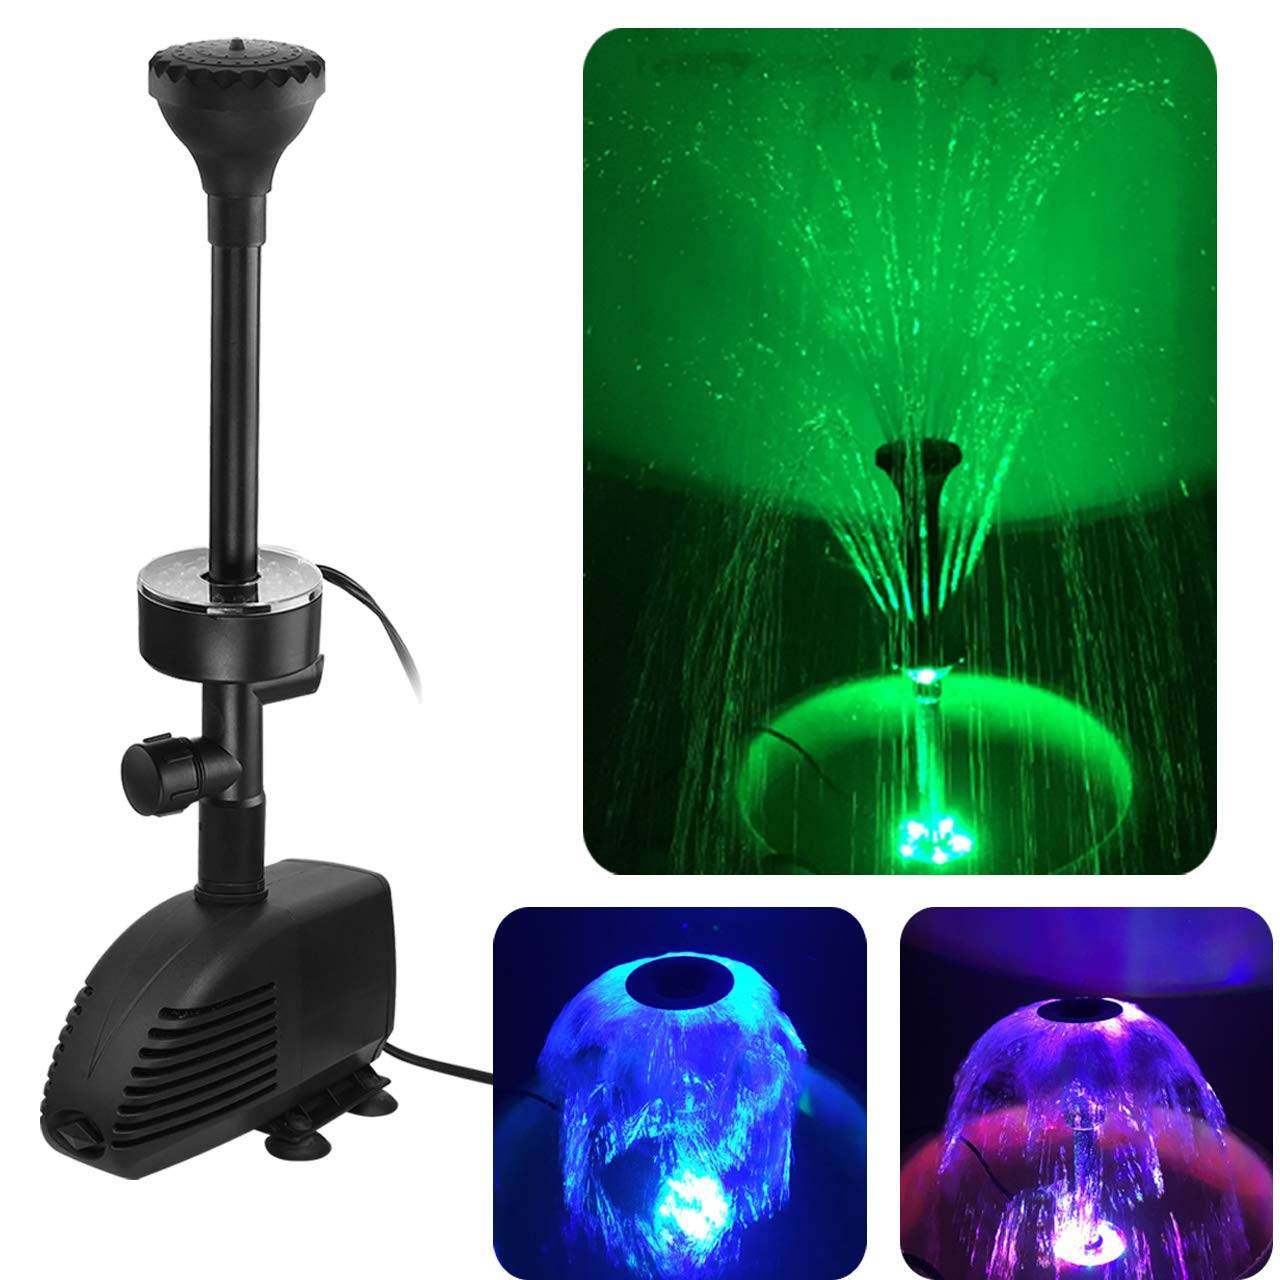 COODIA 660GPH(2500L/H, 110V/45W) Submersible Pump Pond Fountain with Inside Filter and RGB Colorful LED Light, Multiple Water Fountain Spray Nozzles Kit for Garden PondIndoor and Outdoor Landscape by COODIA